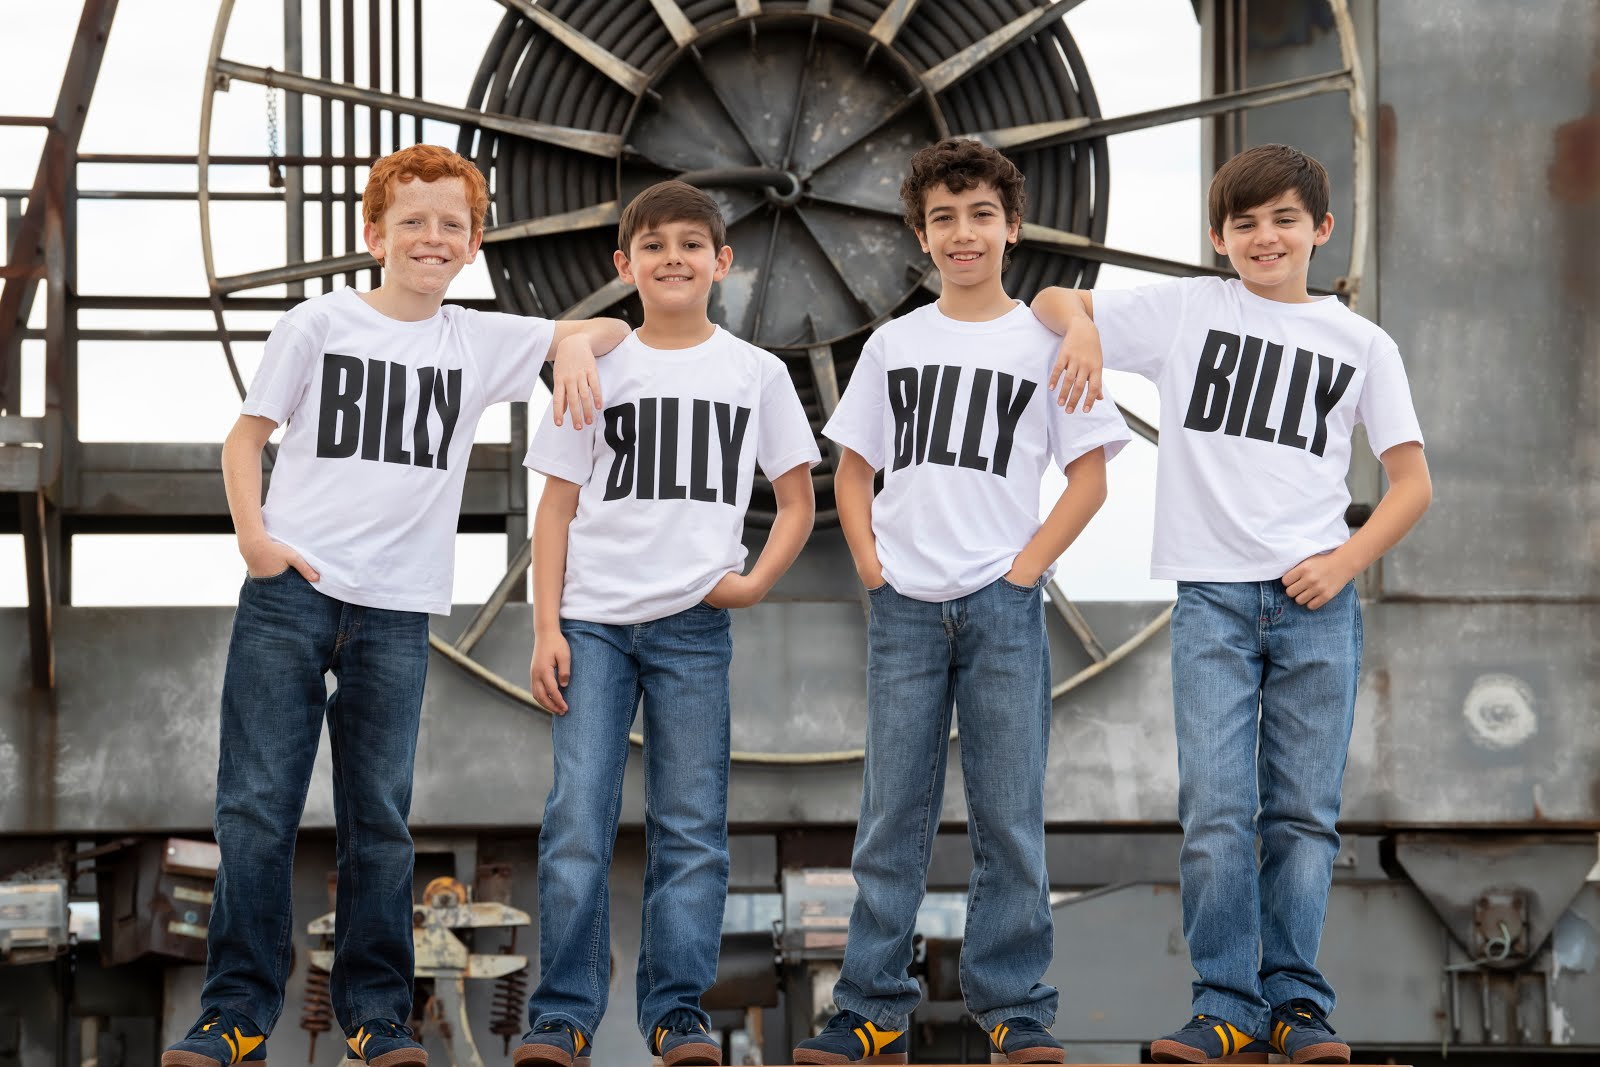 BILLY ELLIOT - 10th anniversary tour